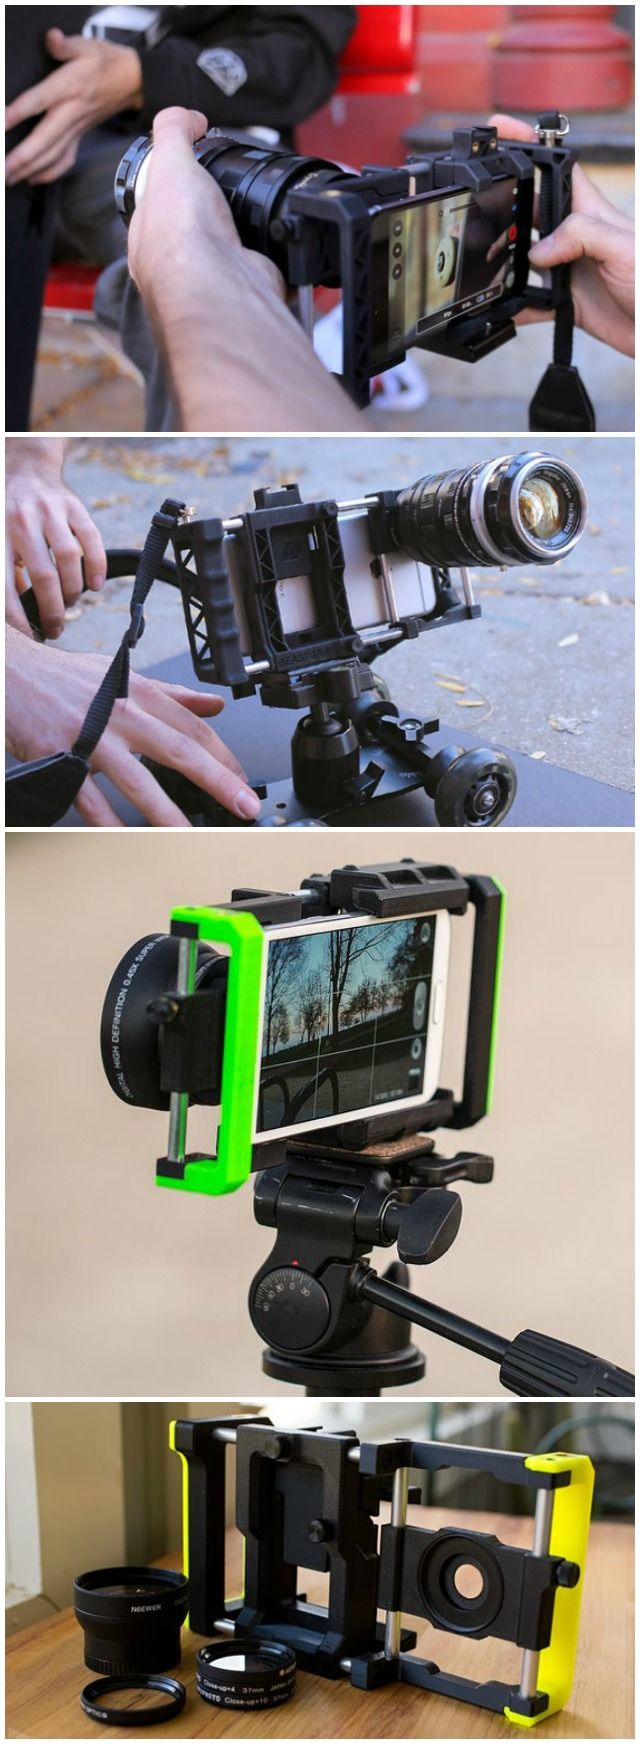 The Beastgrip Pro is a versatile. universal. and fully-adjustable smartphone lens adapter and camera rig sys… | Smartphone photography ...